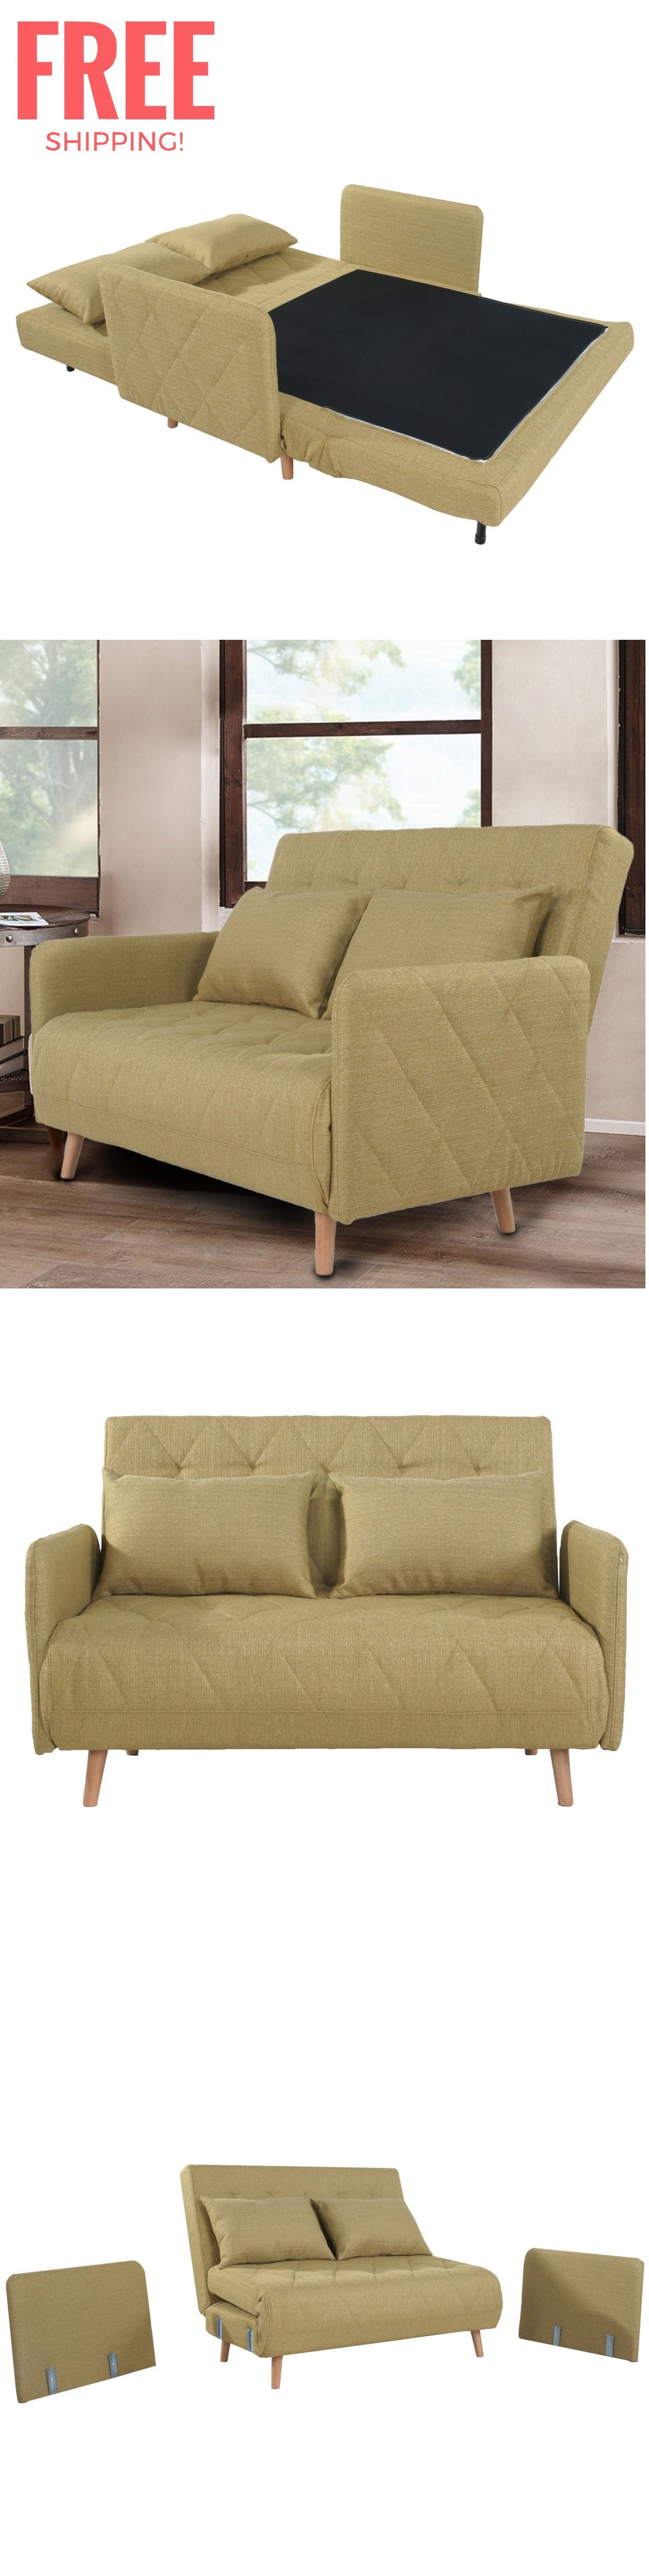 Futons Frames And Covers 131579 Convertible Futon Loveseat Sleeper Couch Bed Sofa Mattress Chair Wood